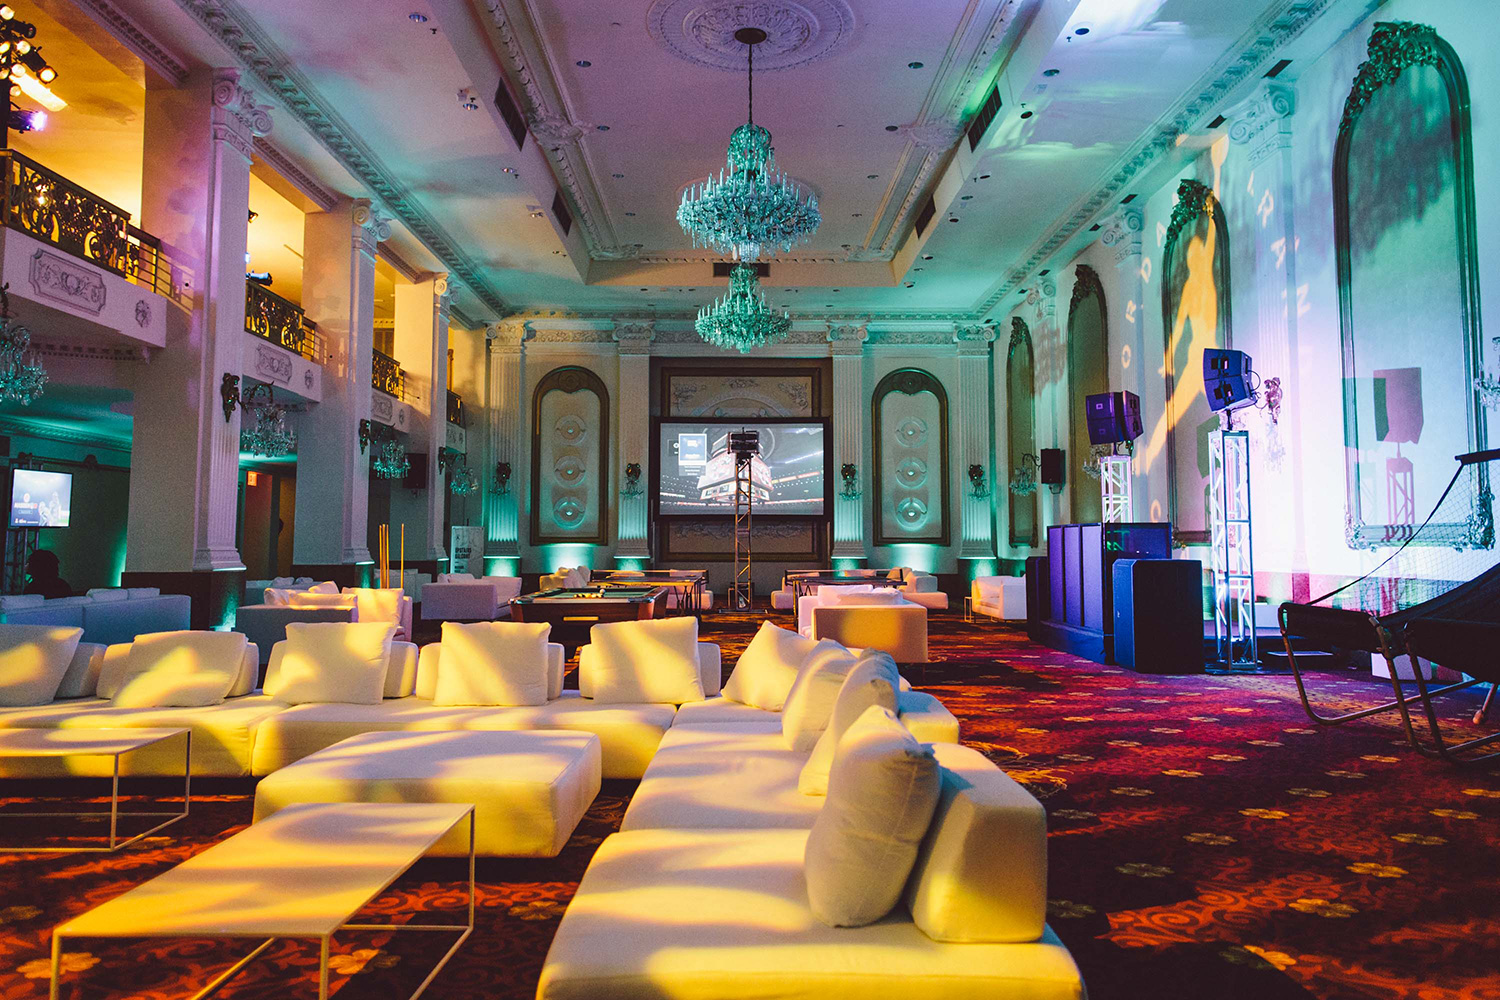 At the Wyndham New Yorker hotel in Midtown, a block away from Madison Square Garden, the players settled into their digs, equipped with everything the players needed for the week—and plenty they didn't. The players lounge was decked out with white couches, a massive TV screen for NBA 2K15 battles, pop-a-shot, a pool table and ping pong.